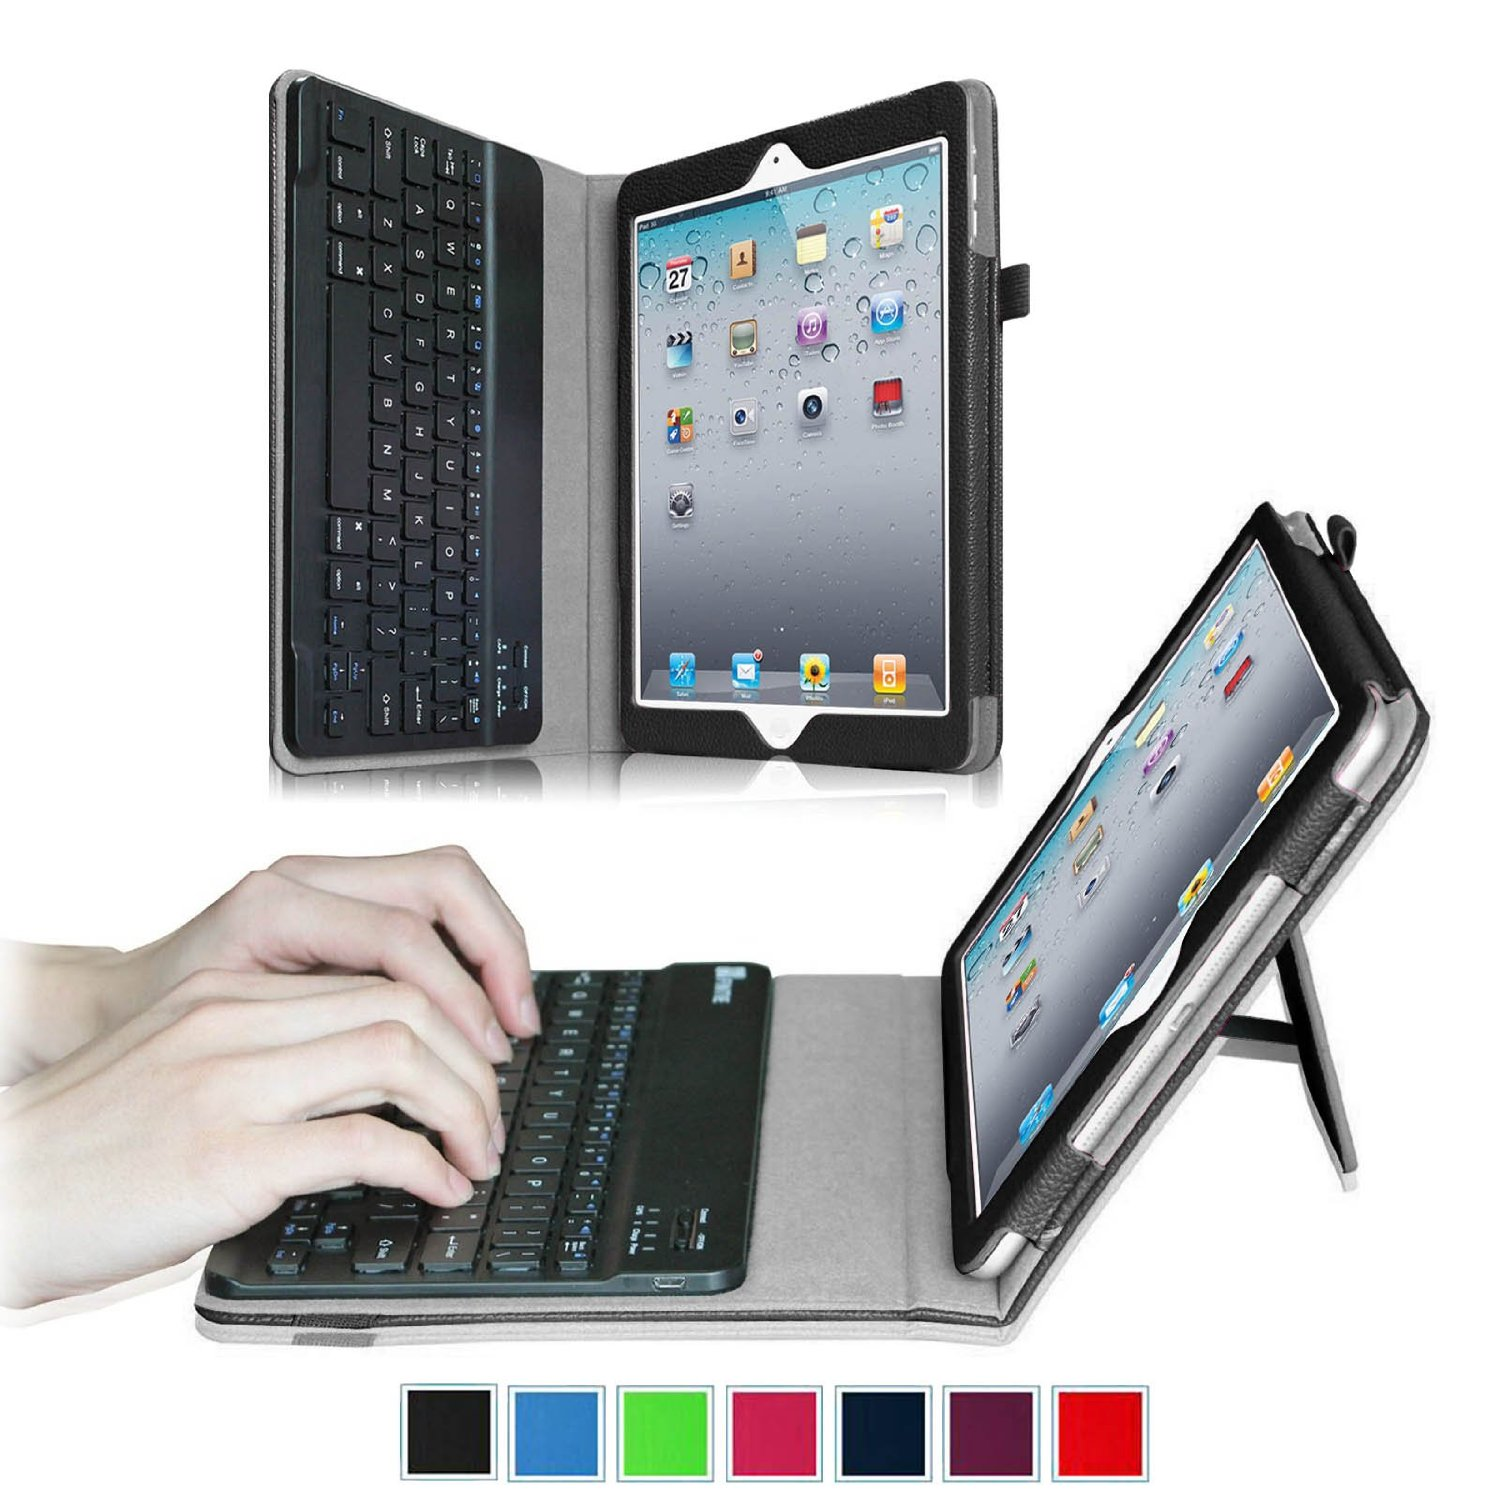 Apple iPad 4, iPad 3 & iPad 2 Keyboard Case - Fintie Ultra Thin Folio Case With Removable Bluetooth Keyboard, Black